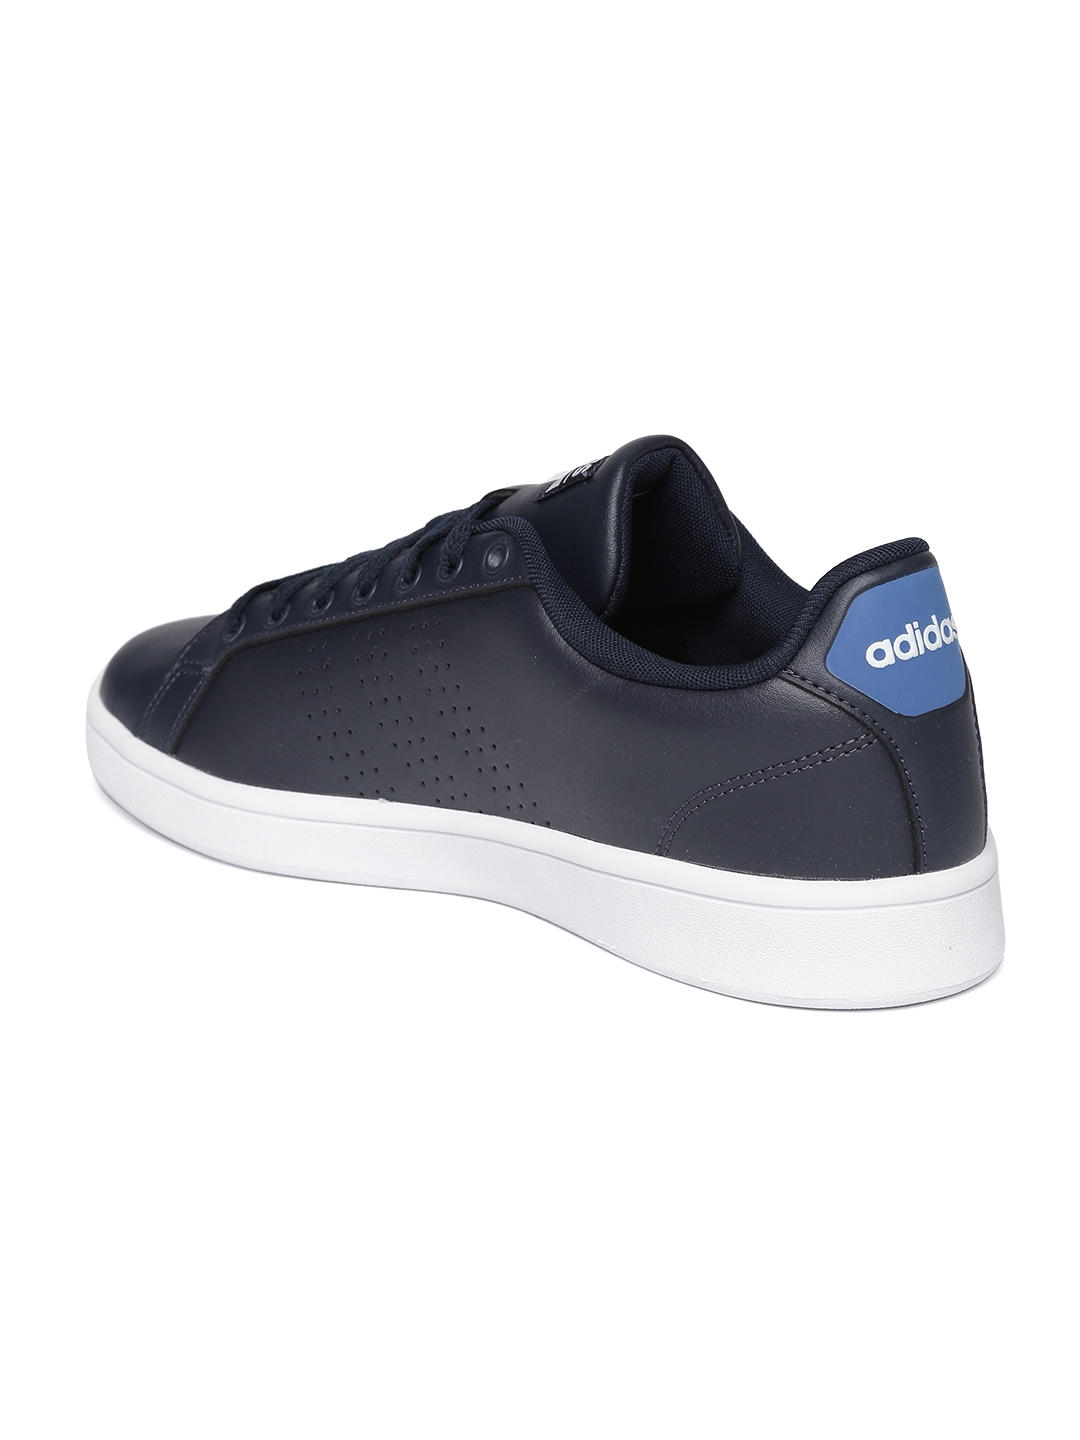 51a9ff7ae593 ADIDAS NEO Men Navy Blue Cloud Foam Advantage Clean Perforated Leather  Sneakers